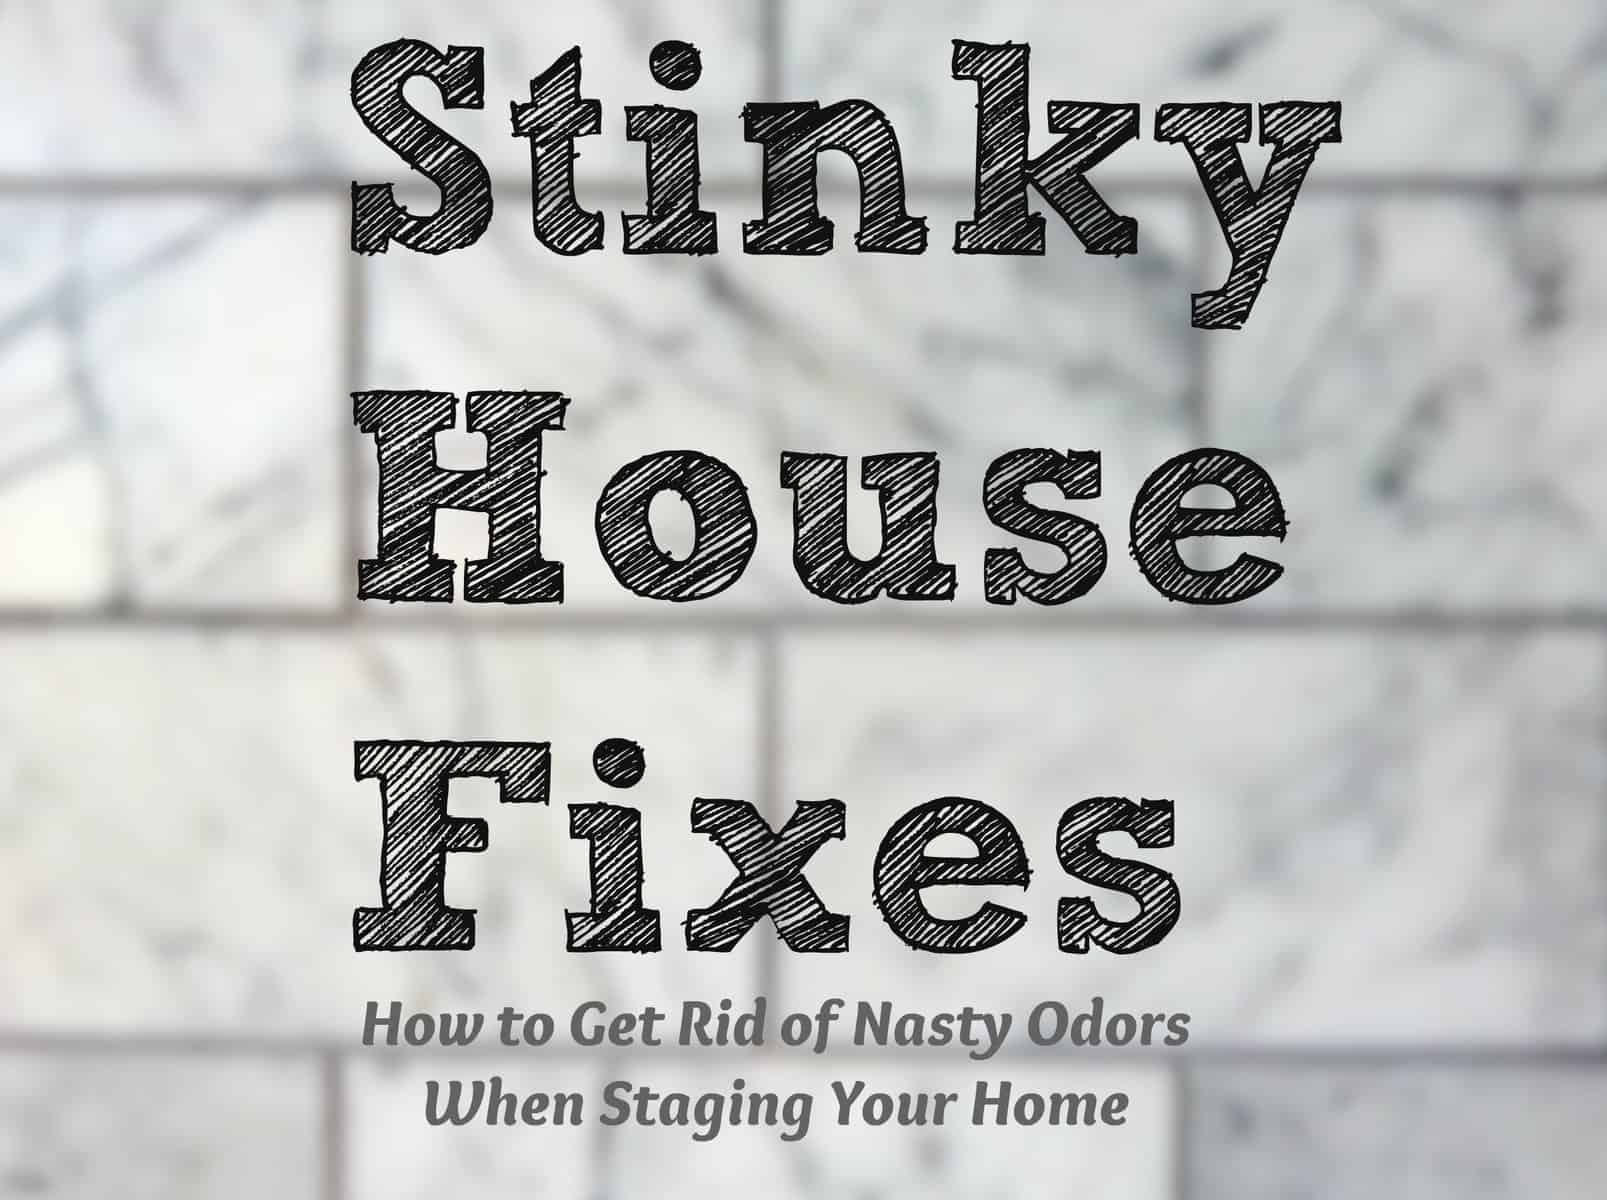 stinky house how to get rid of nasty odors when staging heartwork organizing tips for. Black Bedroom Furniture Sets. Home Design Ideas